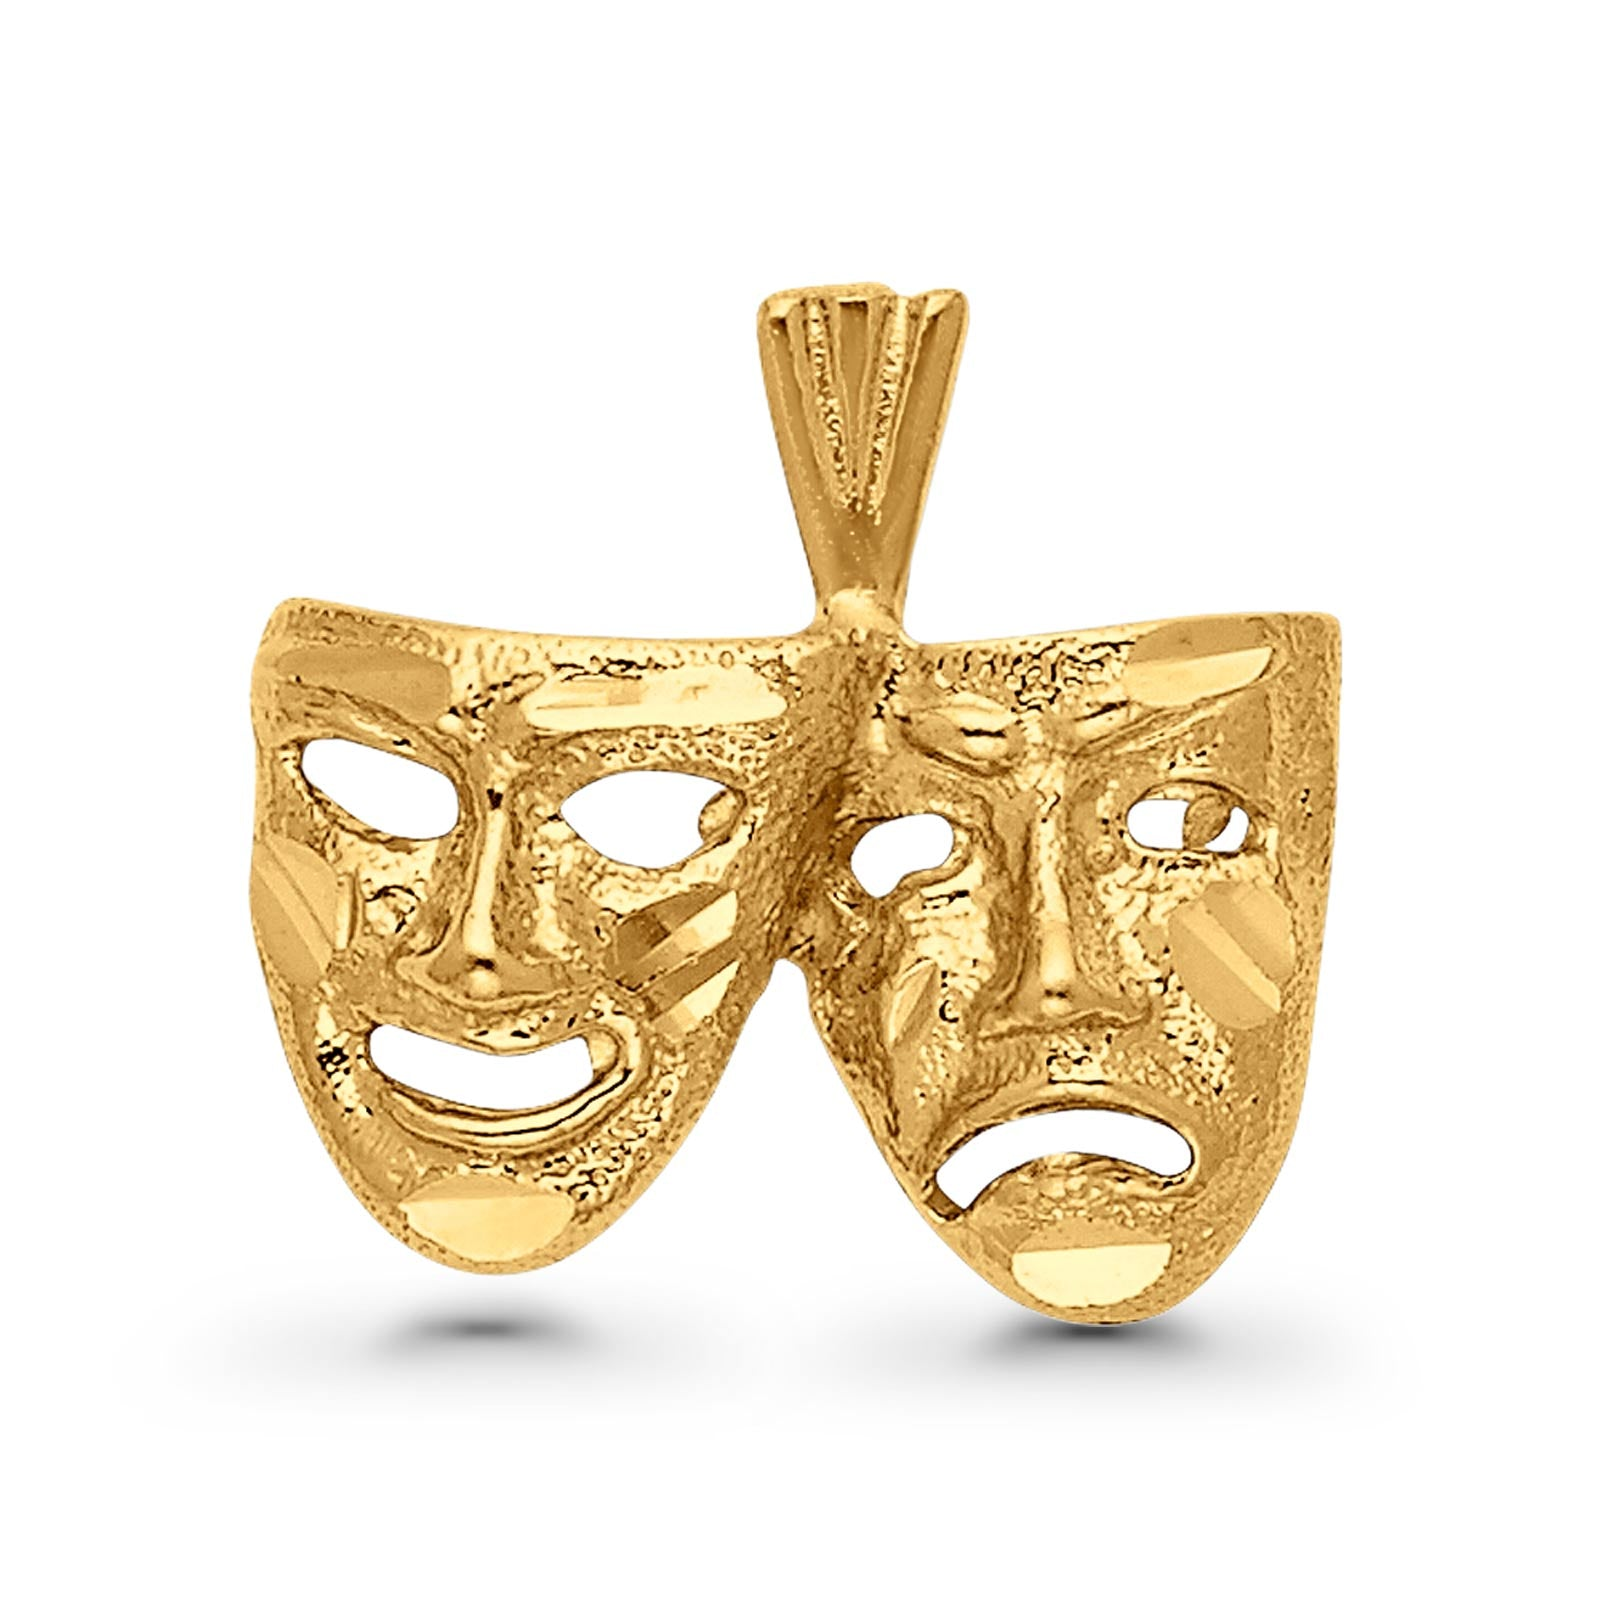 Real 14K Yellow Gold Beautiful Mask Charm Pendant 2.3grams 12mmX18mm